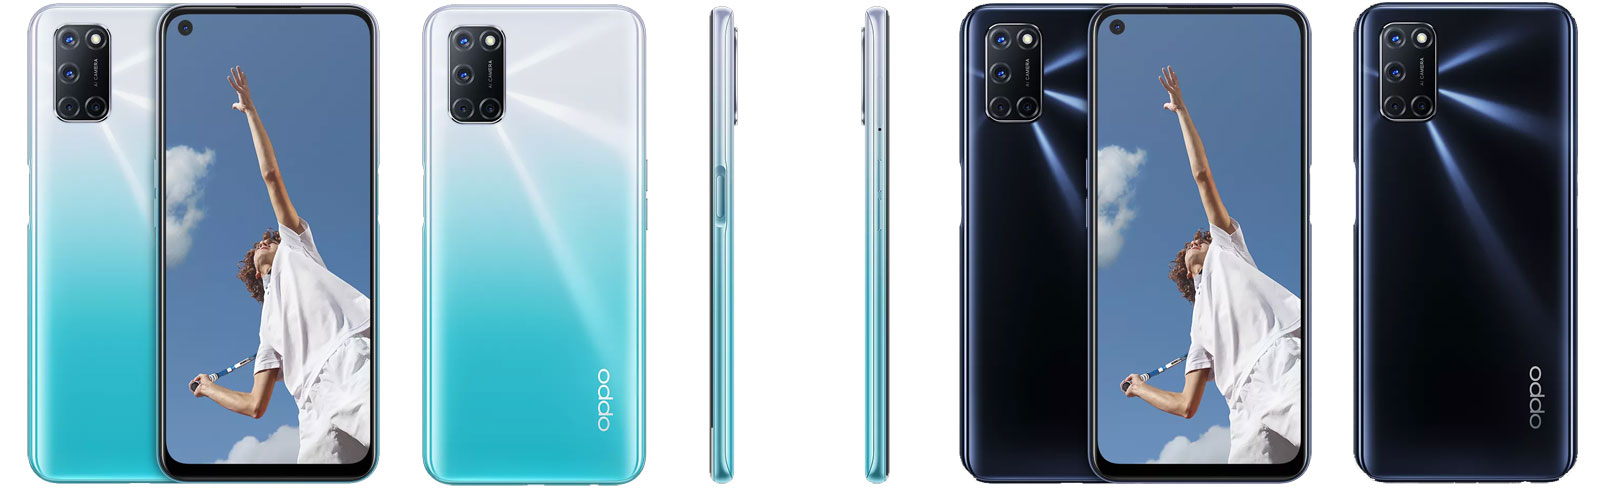 Oppo A52 goes official in China - specifications and prices